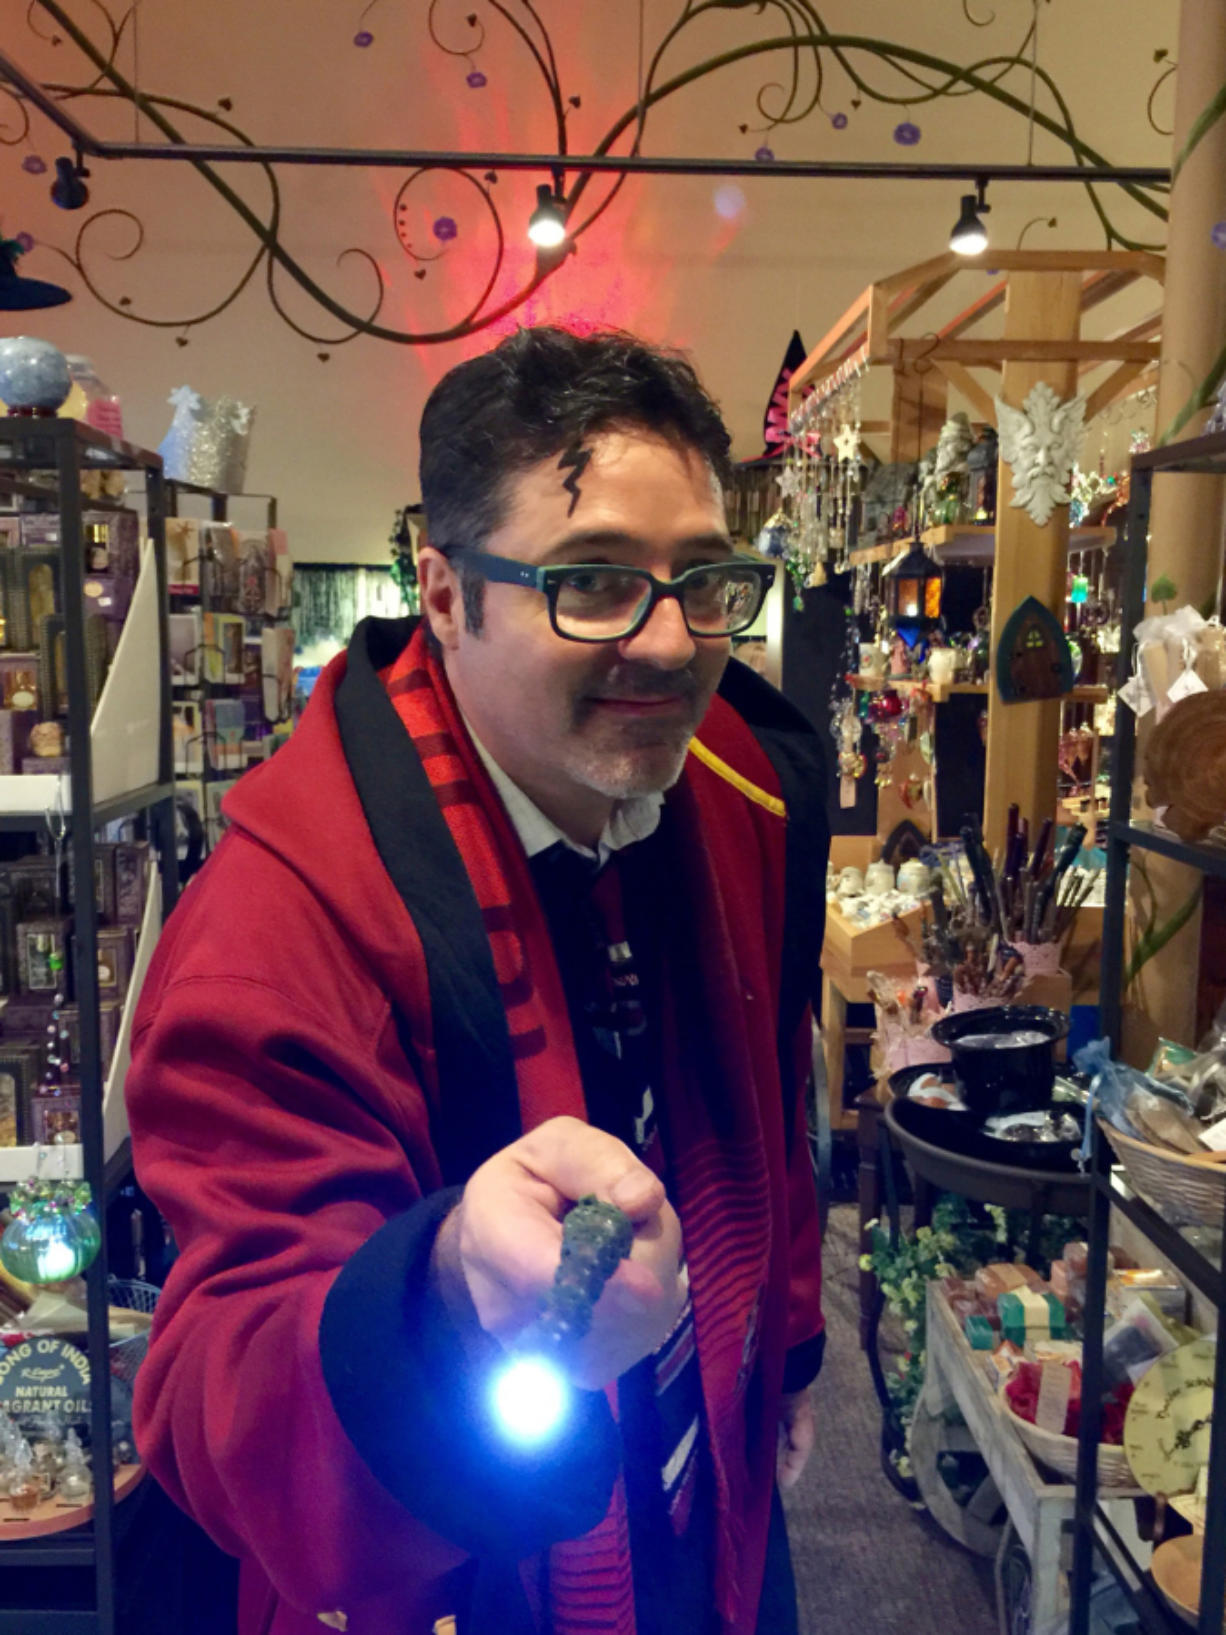 John LaBerge of Love Potion Magickal Perfumerie is dressed as the character Harry Potter.